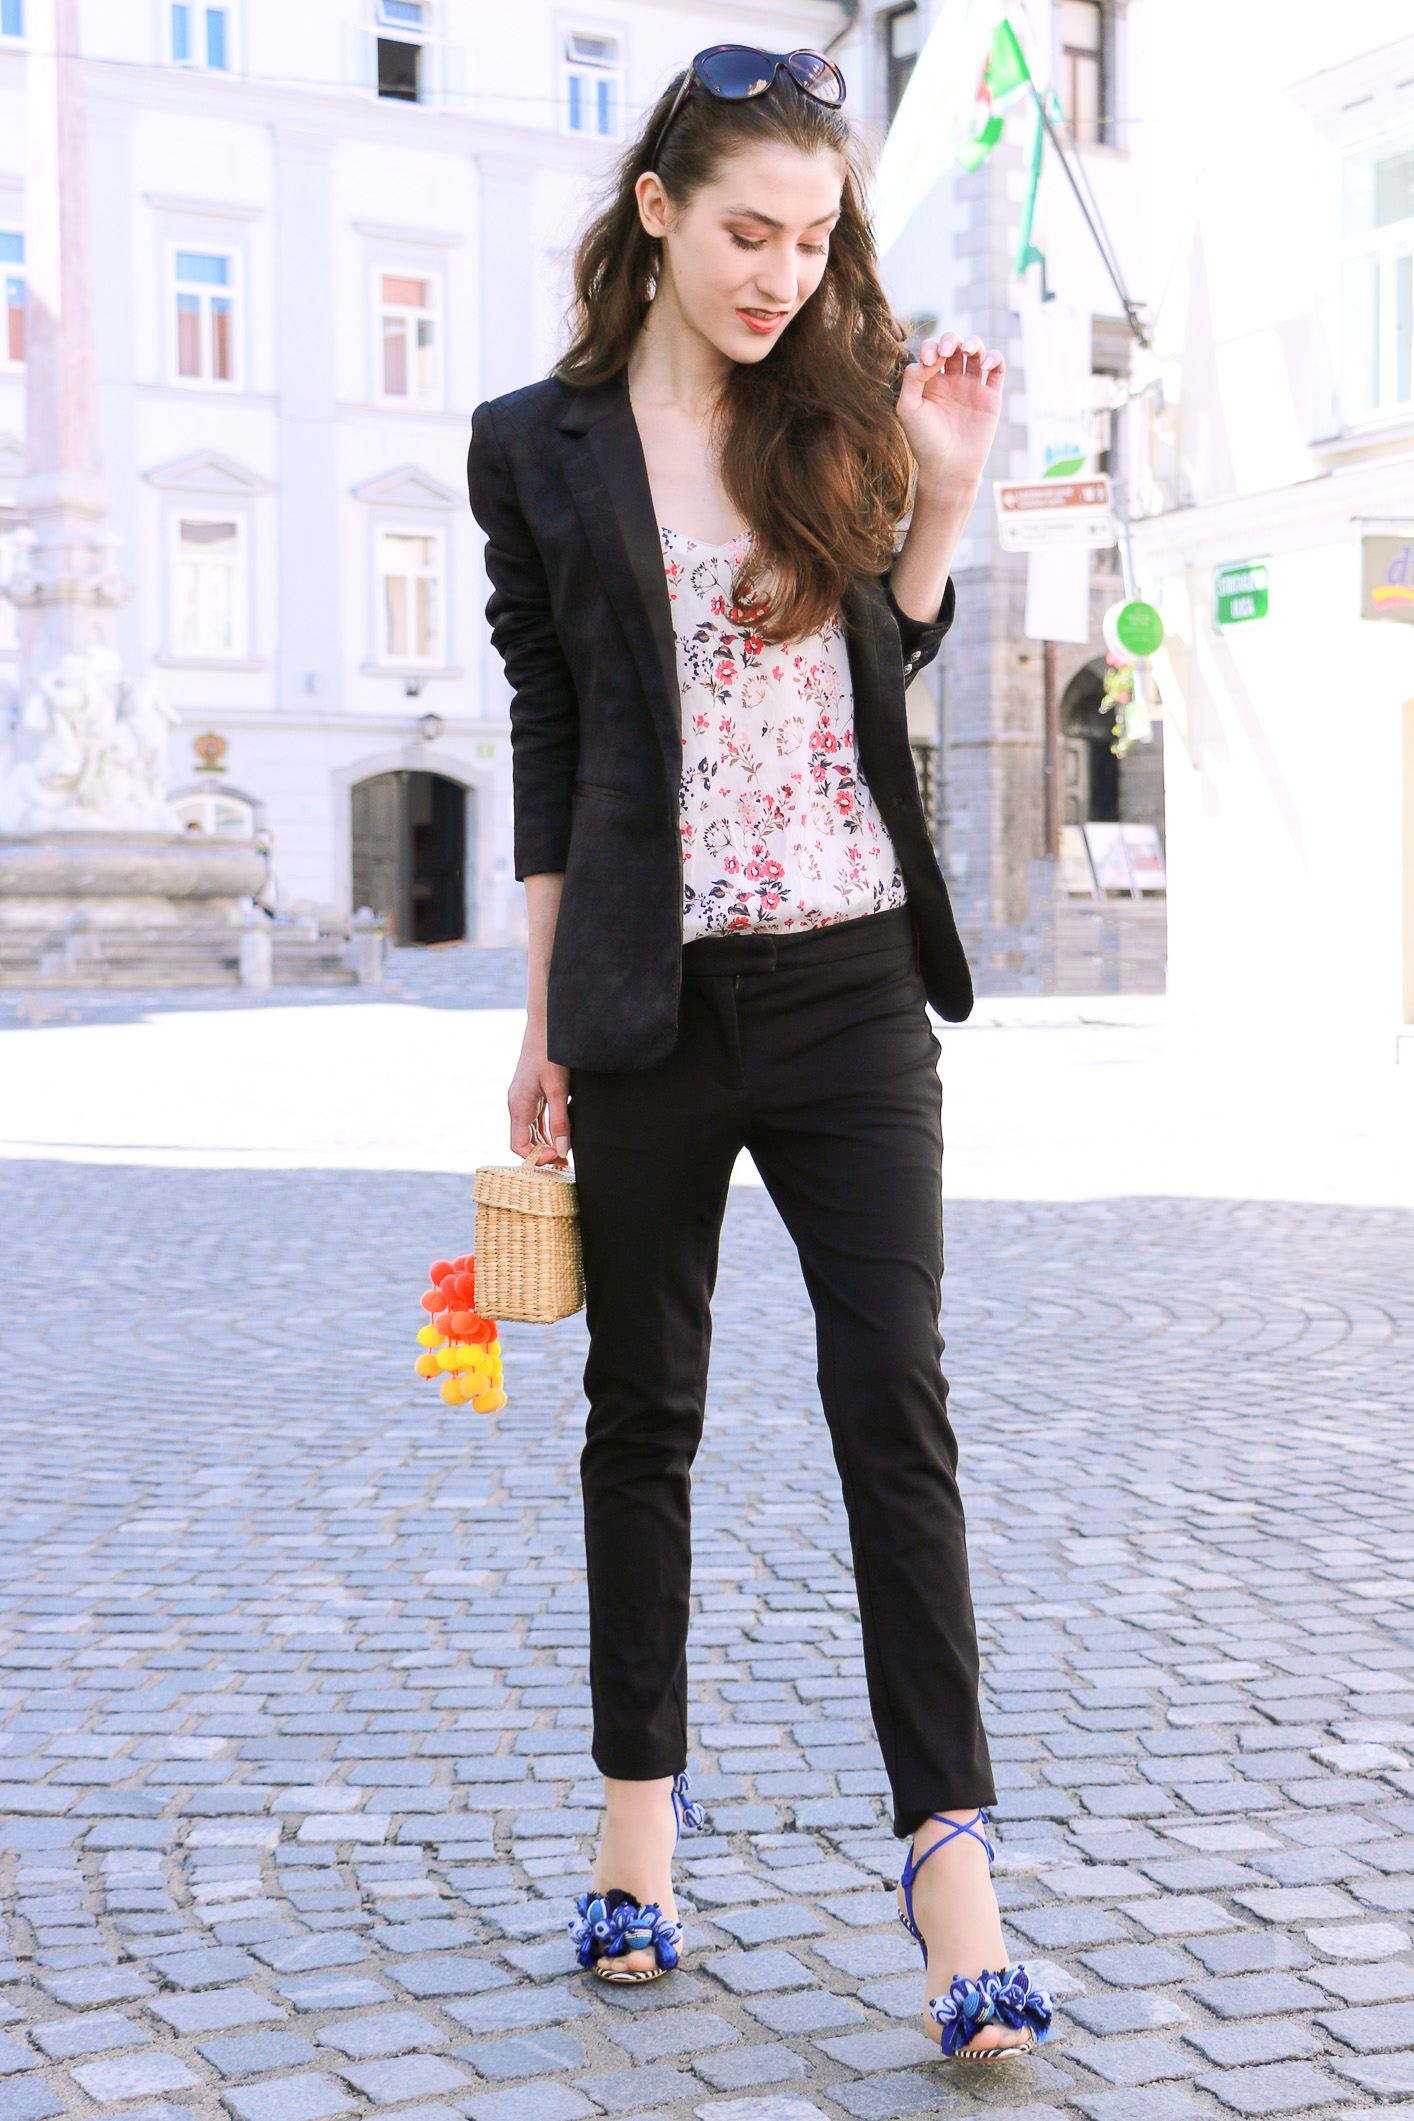 Fashion blogger Veronika Lipar of Brunette From Wall Street sharing fashionable business casual style in all black trouser suit